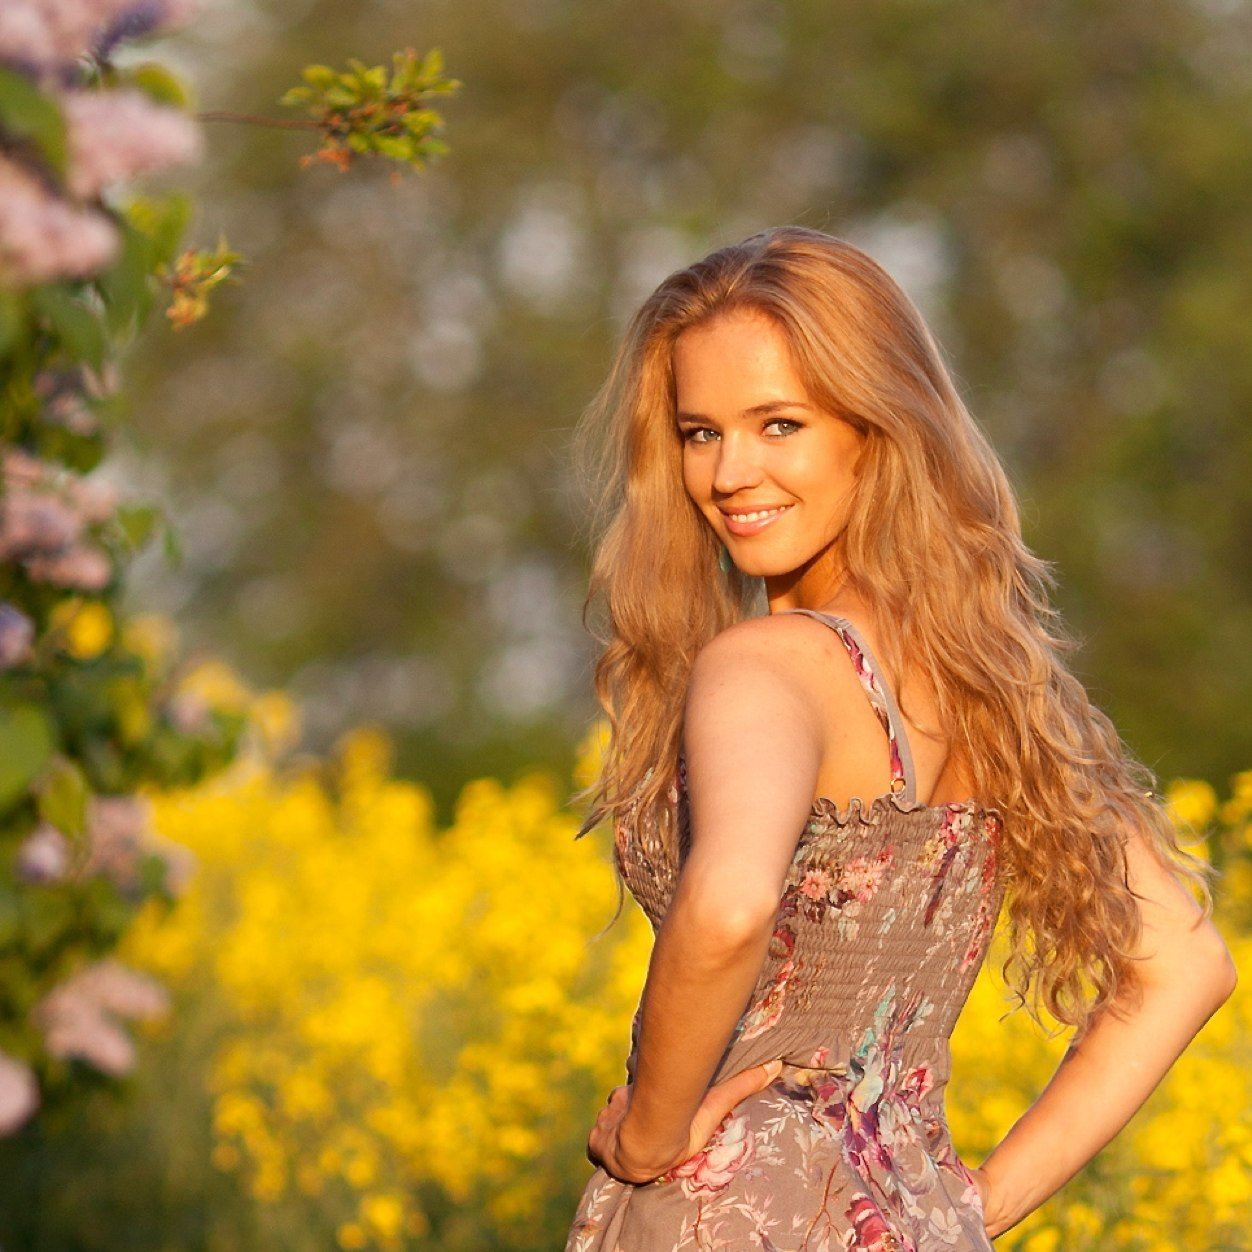 Latvian Women – Meeting, Dating, and More (LOTS of Pics) 1